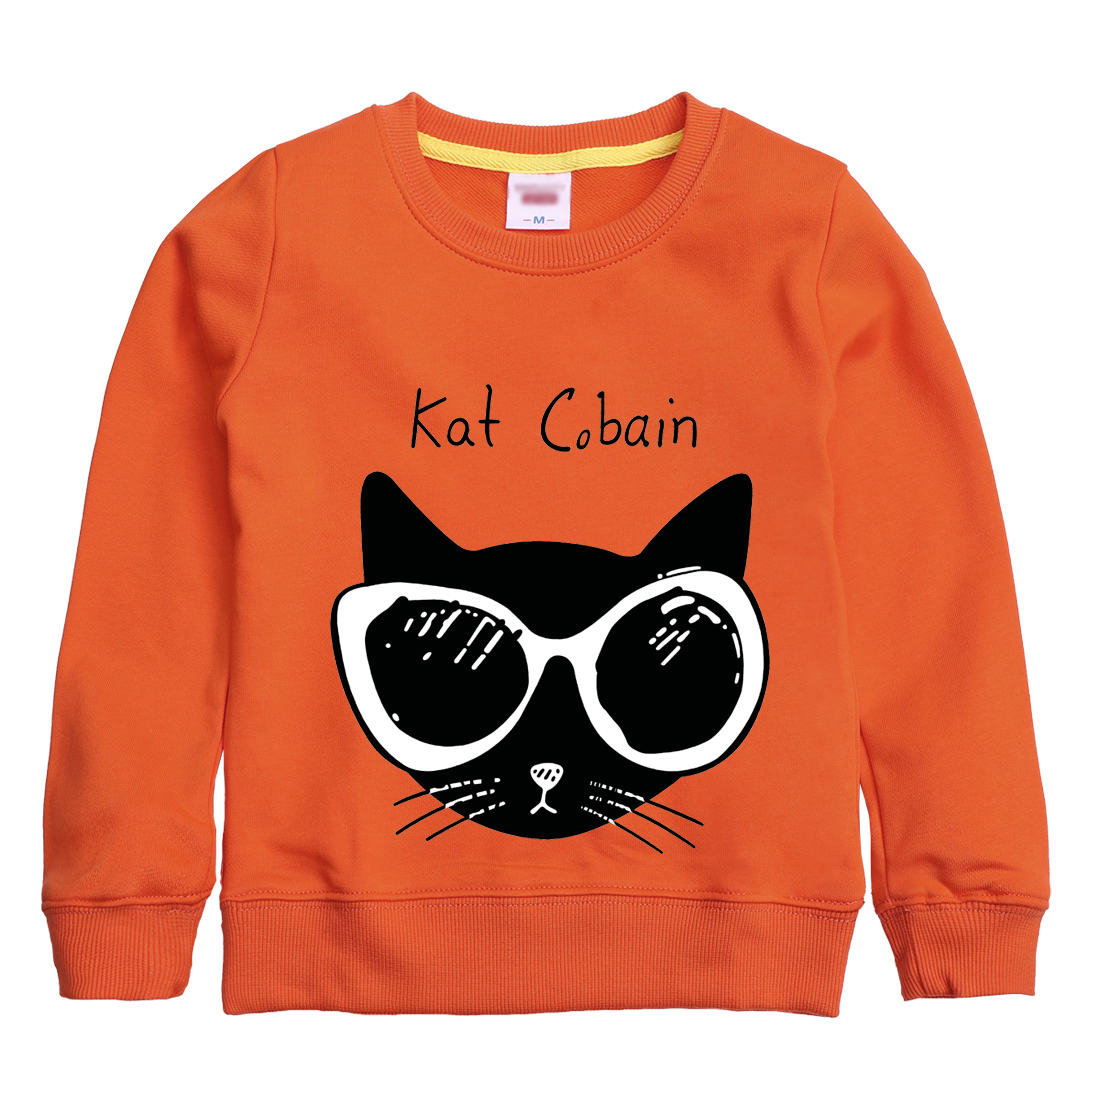 Kat Cobain pattern printed 2018 new fashion sweatshirt winter autumn childrens clothing design for girl & boy